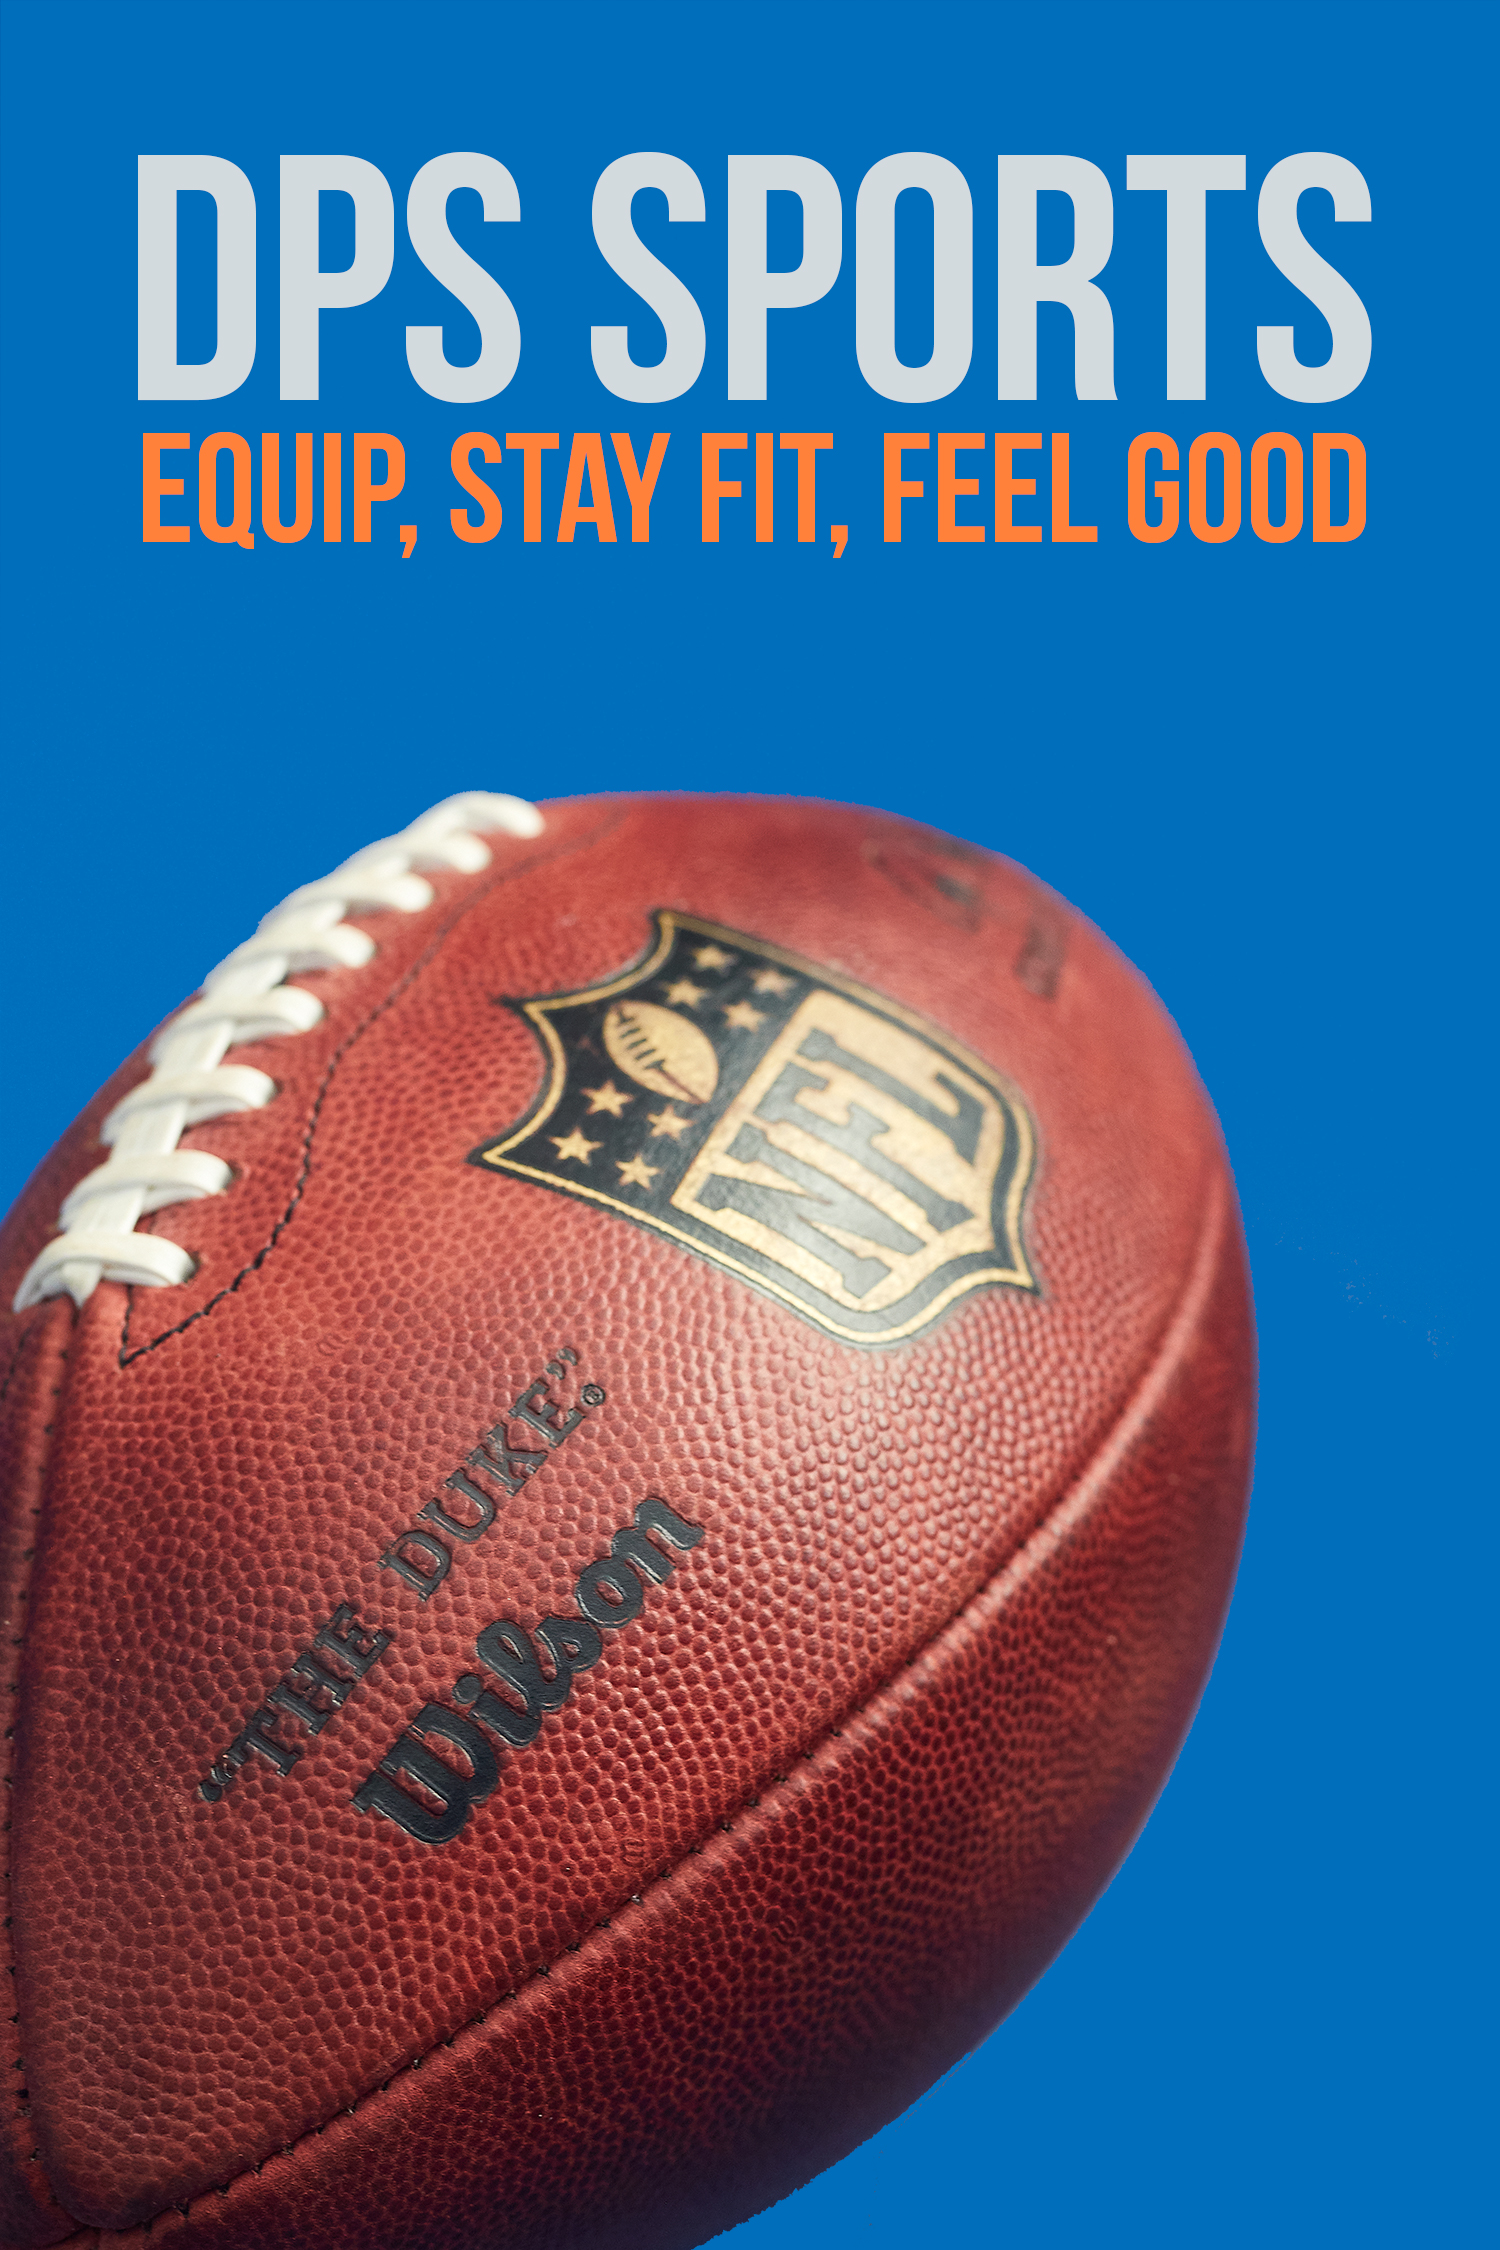 A poster of an American Football with the Text DPS Sports Equip, Stay Fit, Feel Good.